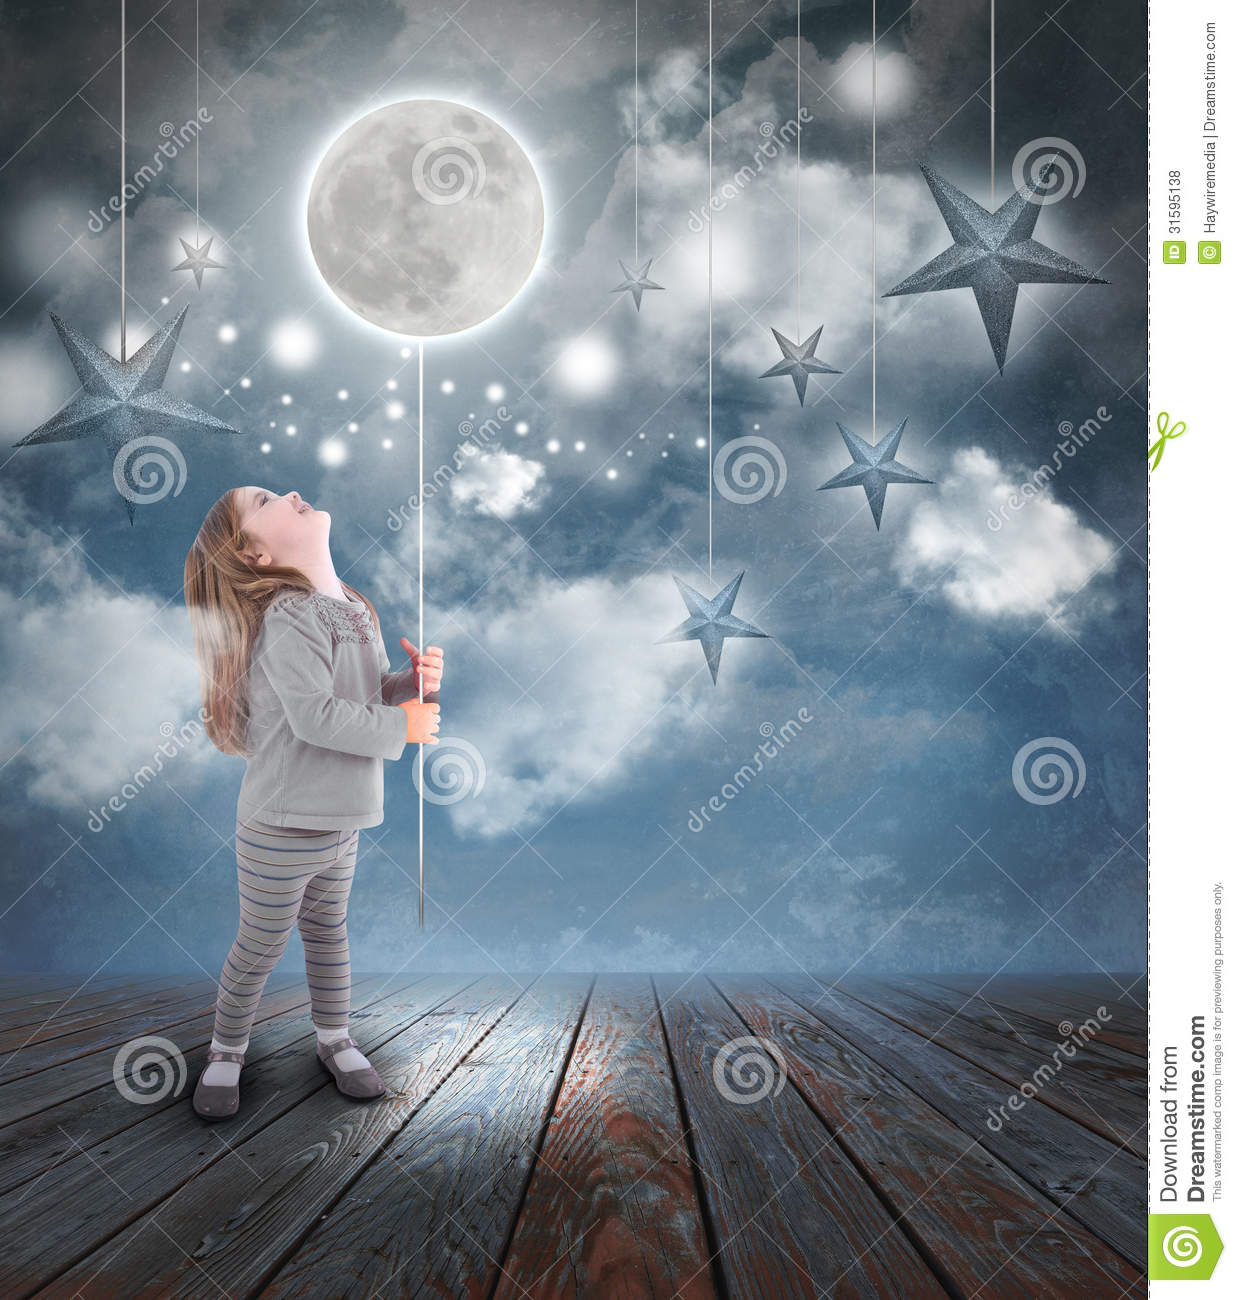 Kids at night with moon royalty free stock photography image - Child Playing With Moon And Stars At Night Royalty Free Stock Photos